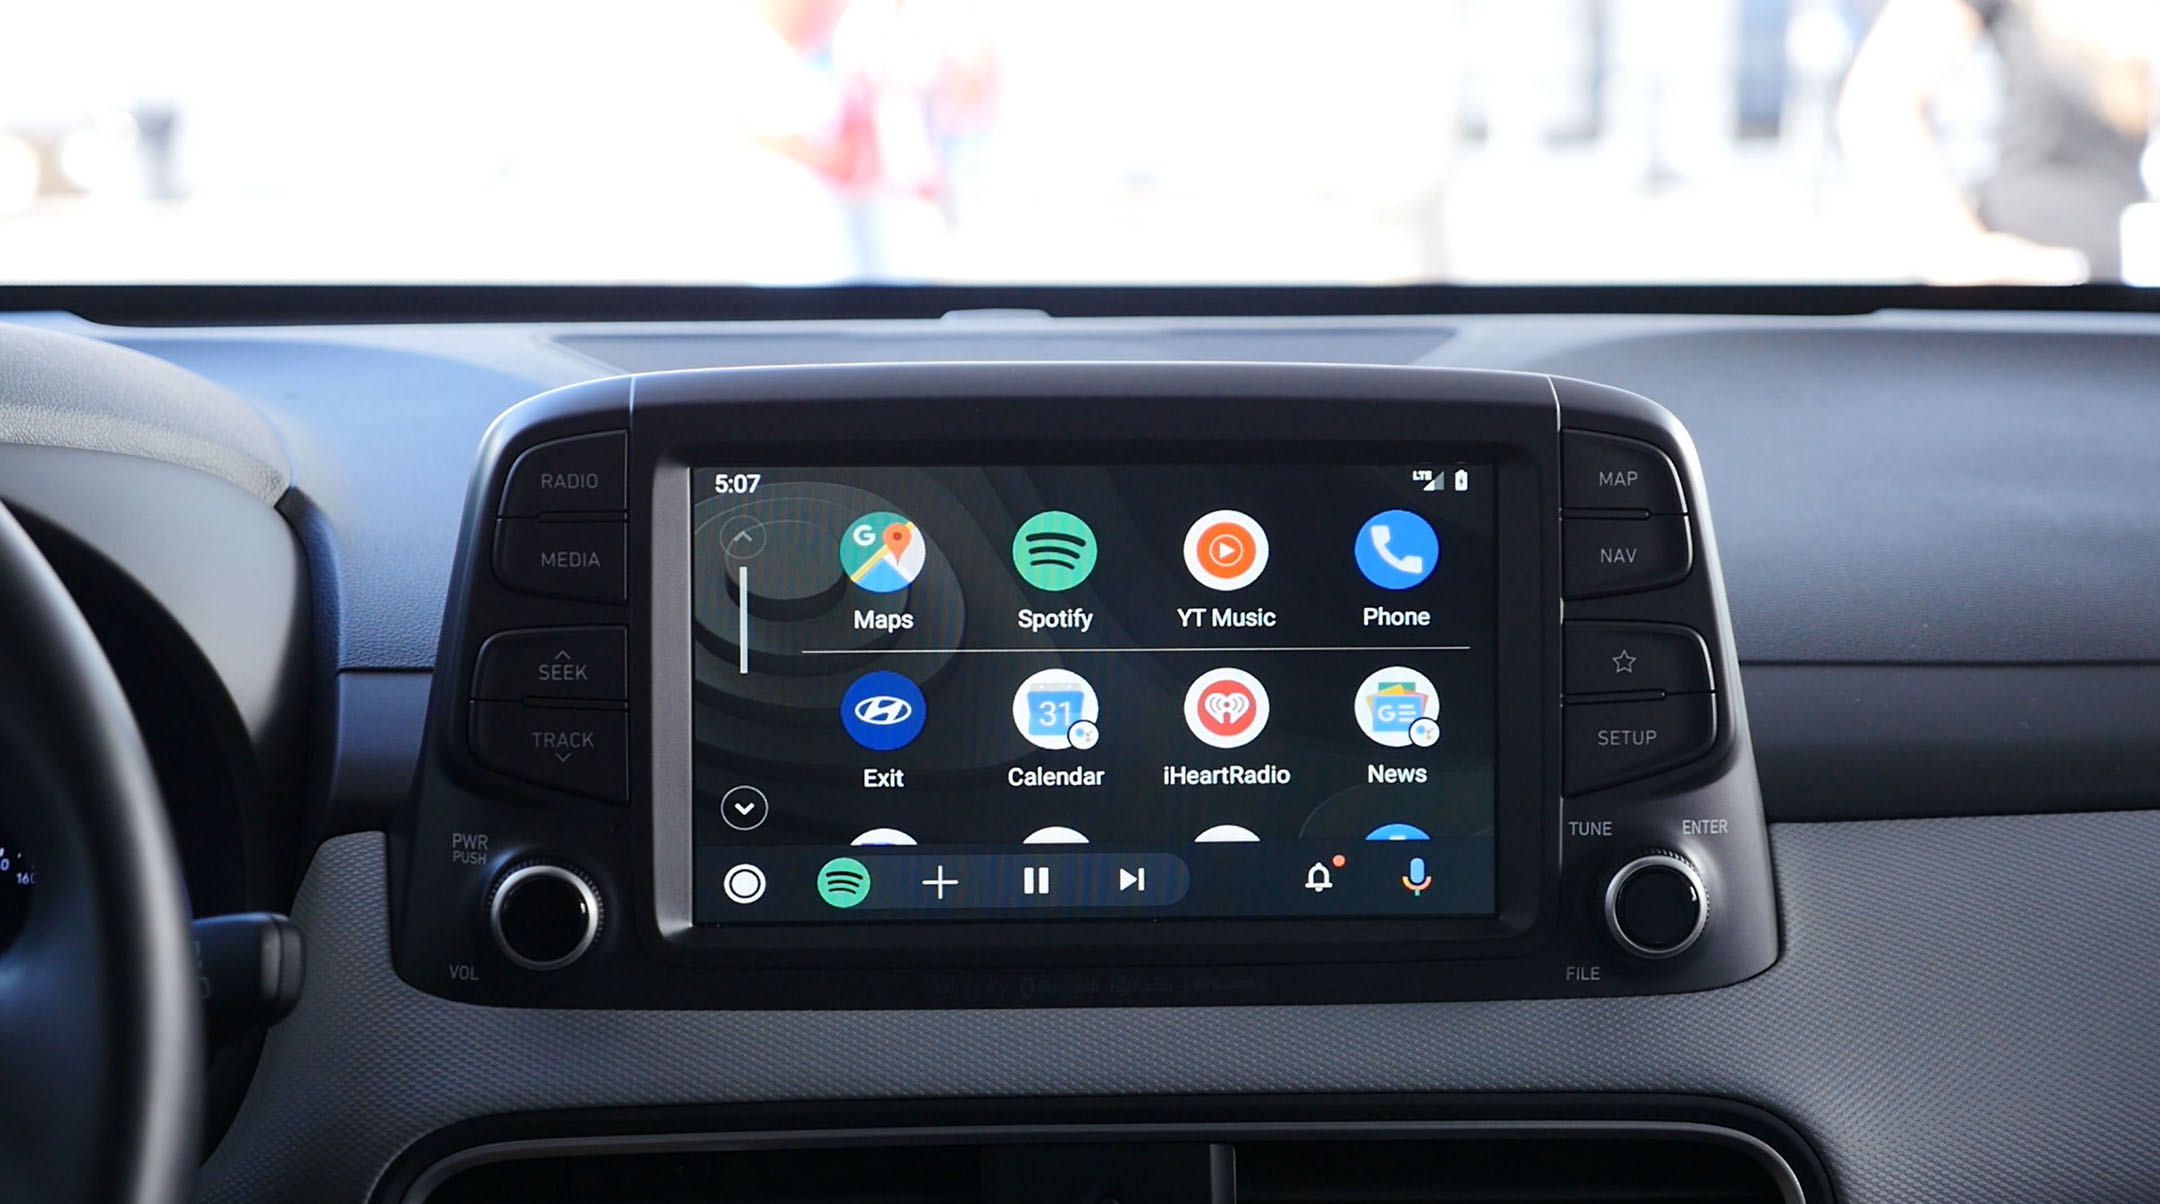 The redesigned Android Auto seems to be rolling out